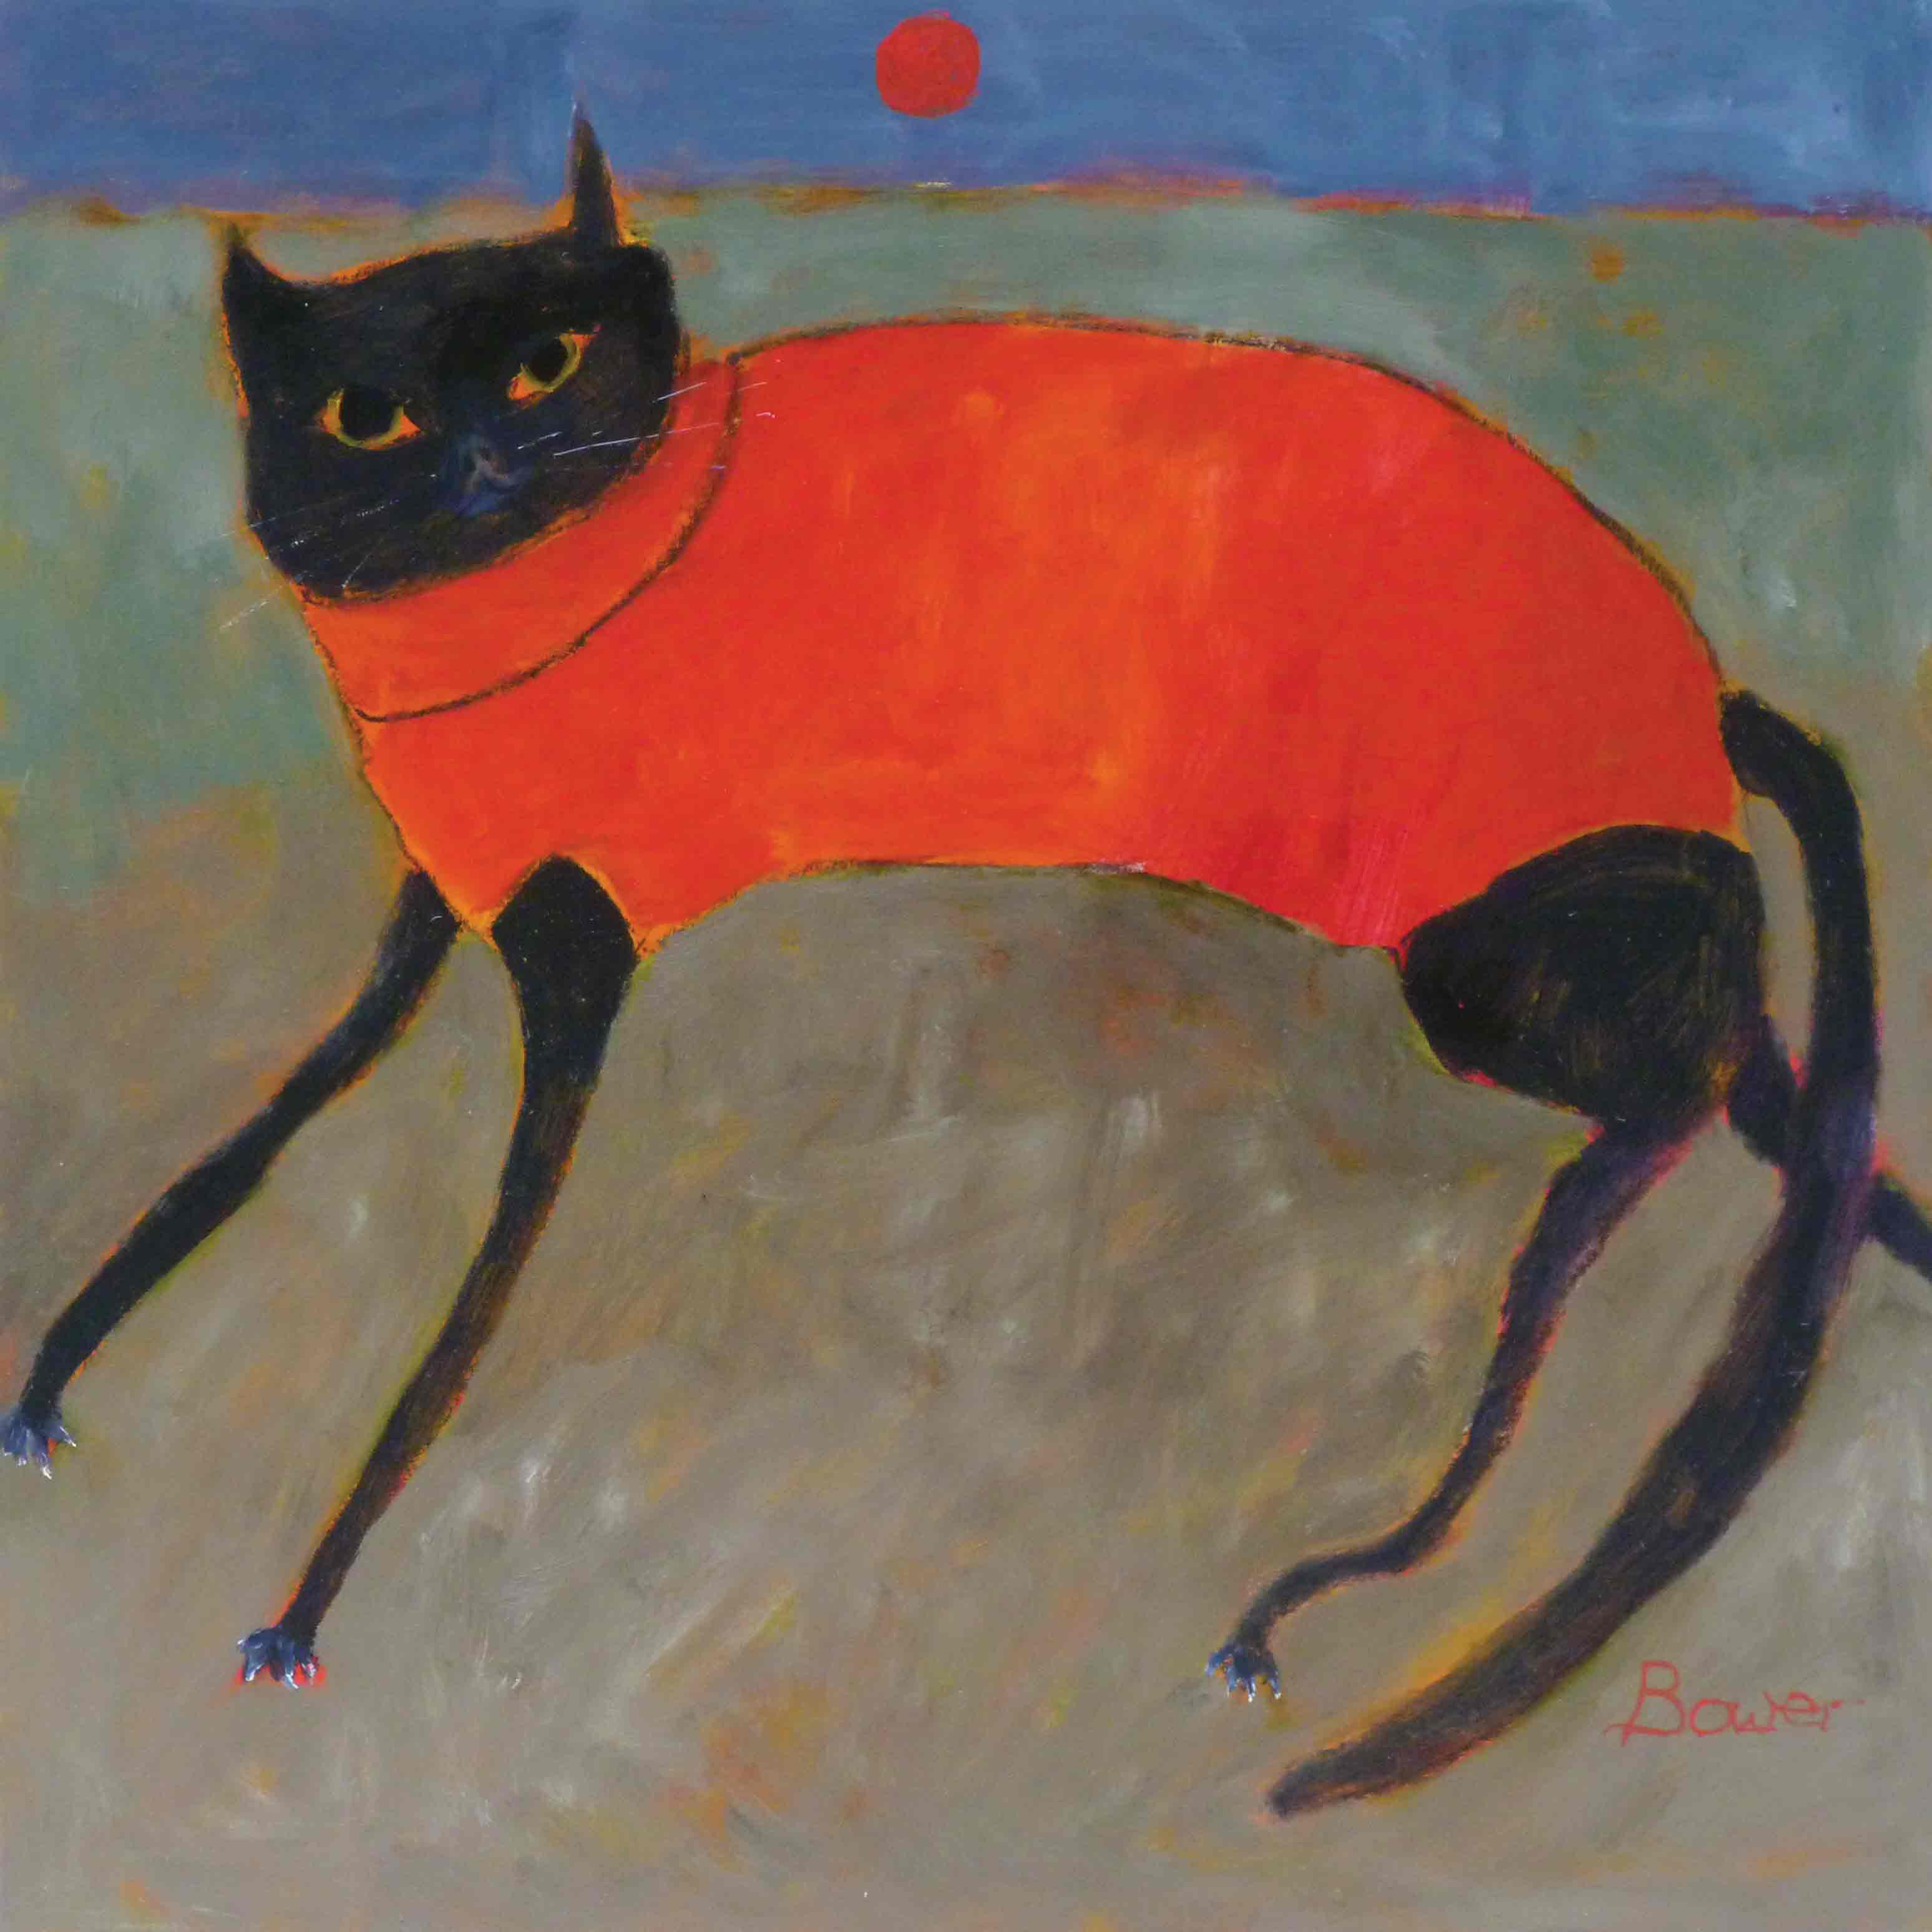 Fine Art Greeting Card by Susan Bower, Oil painting, Cat wearing red coat